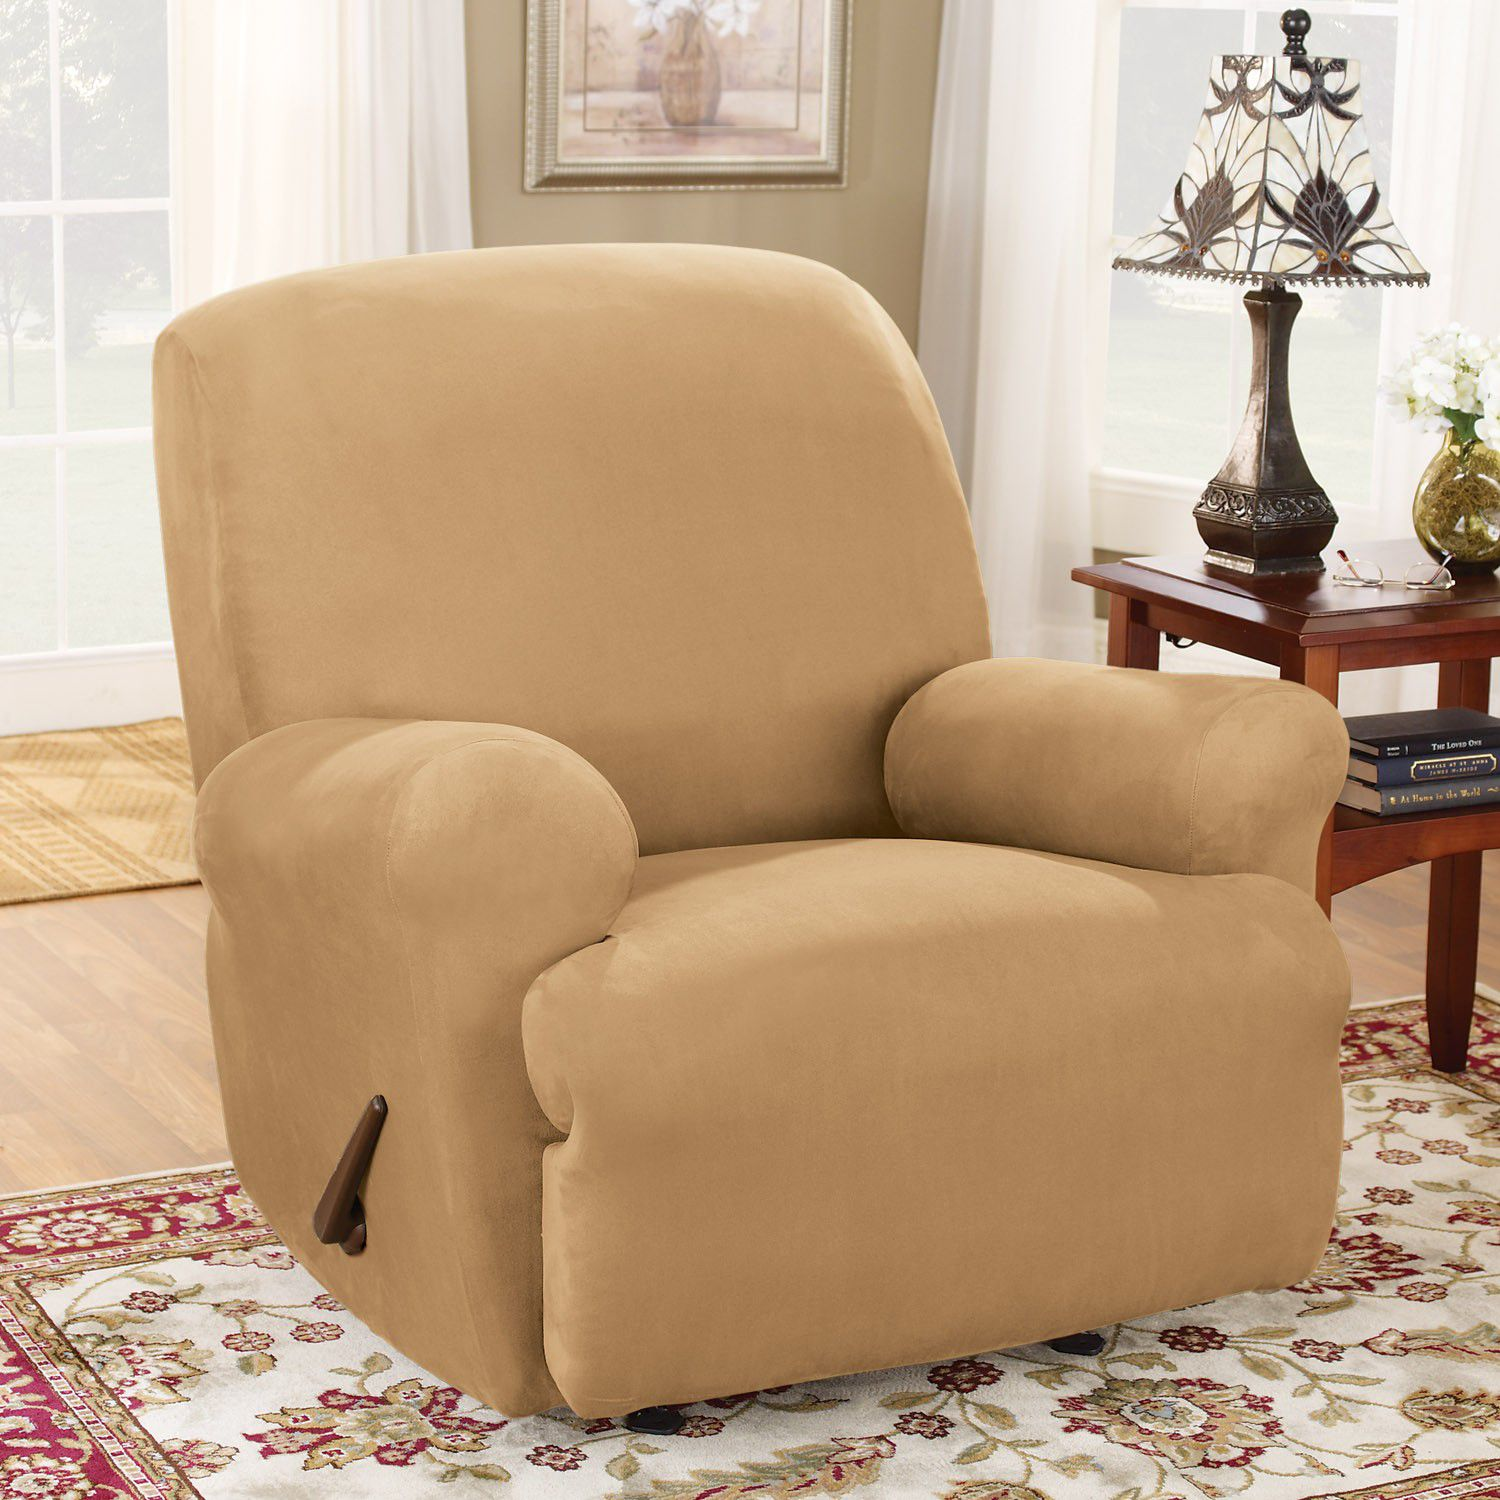 Sure Fit Stretch Suede Recliner Slipcover & Fit Stretch Suede Recliner Slipcover islam-shia.org